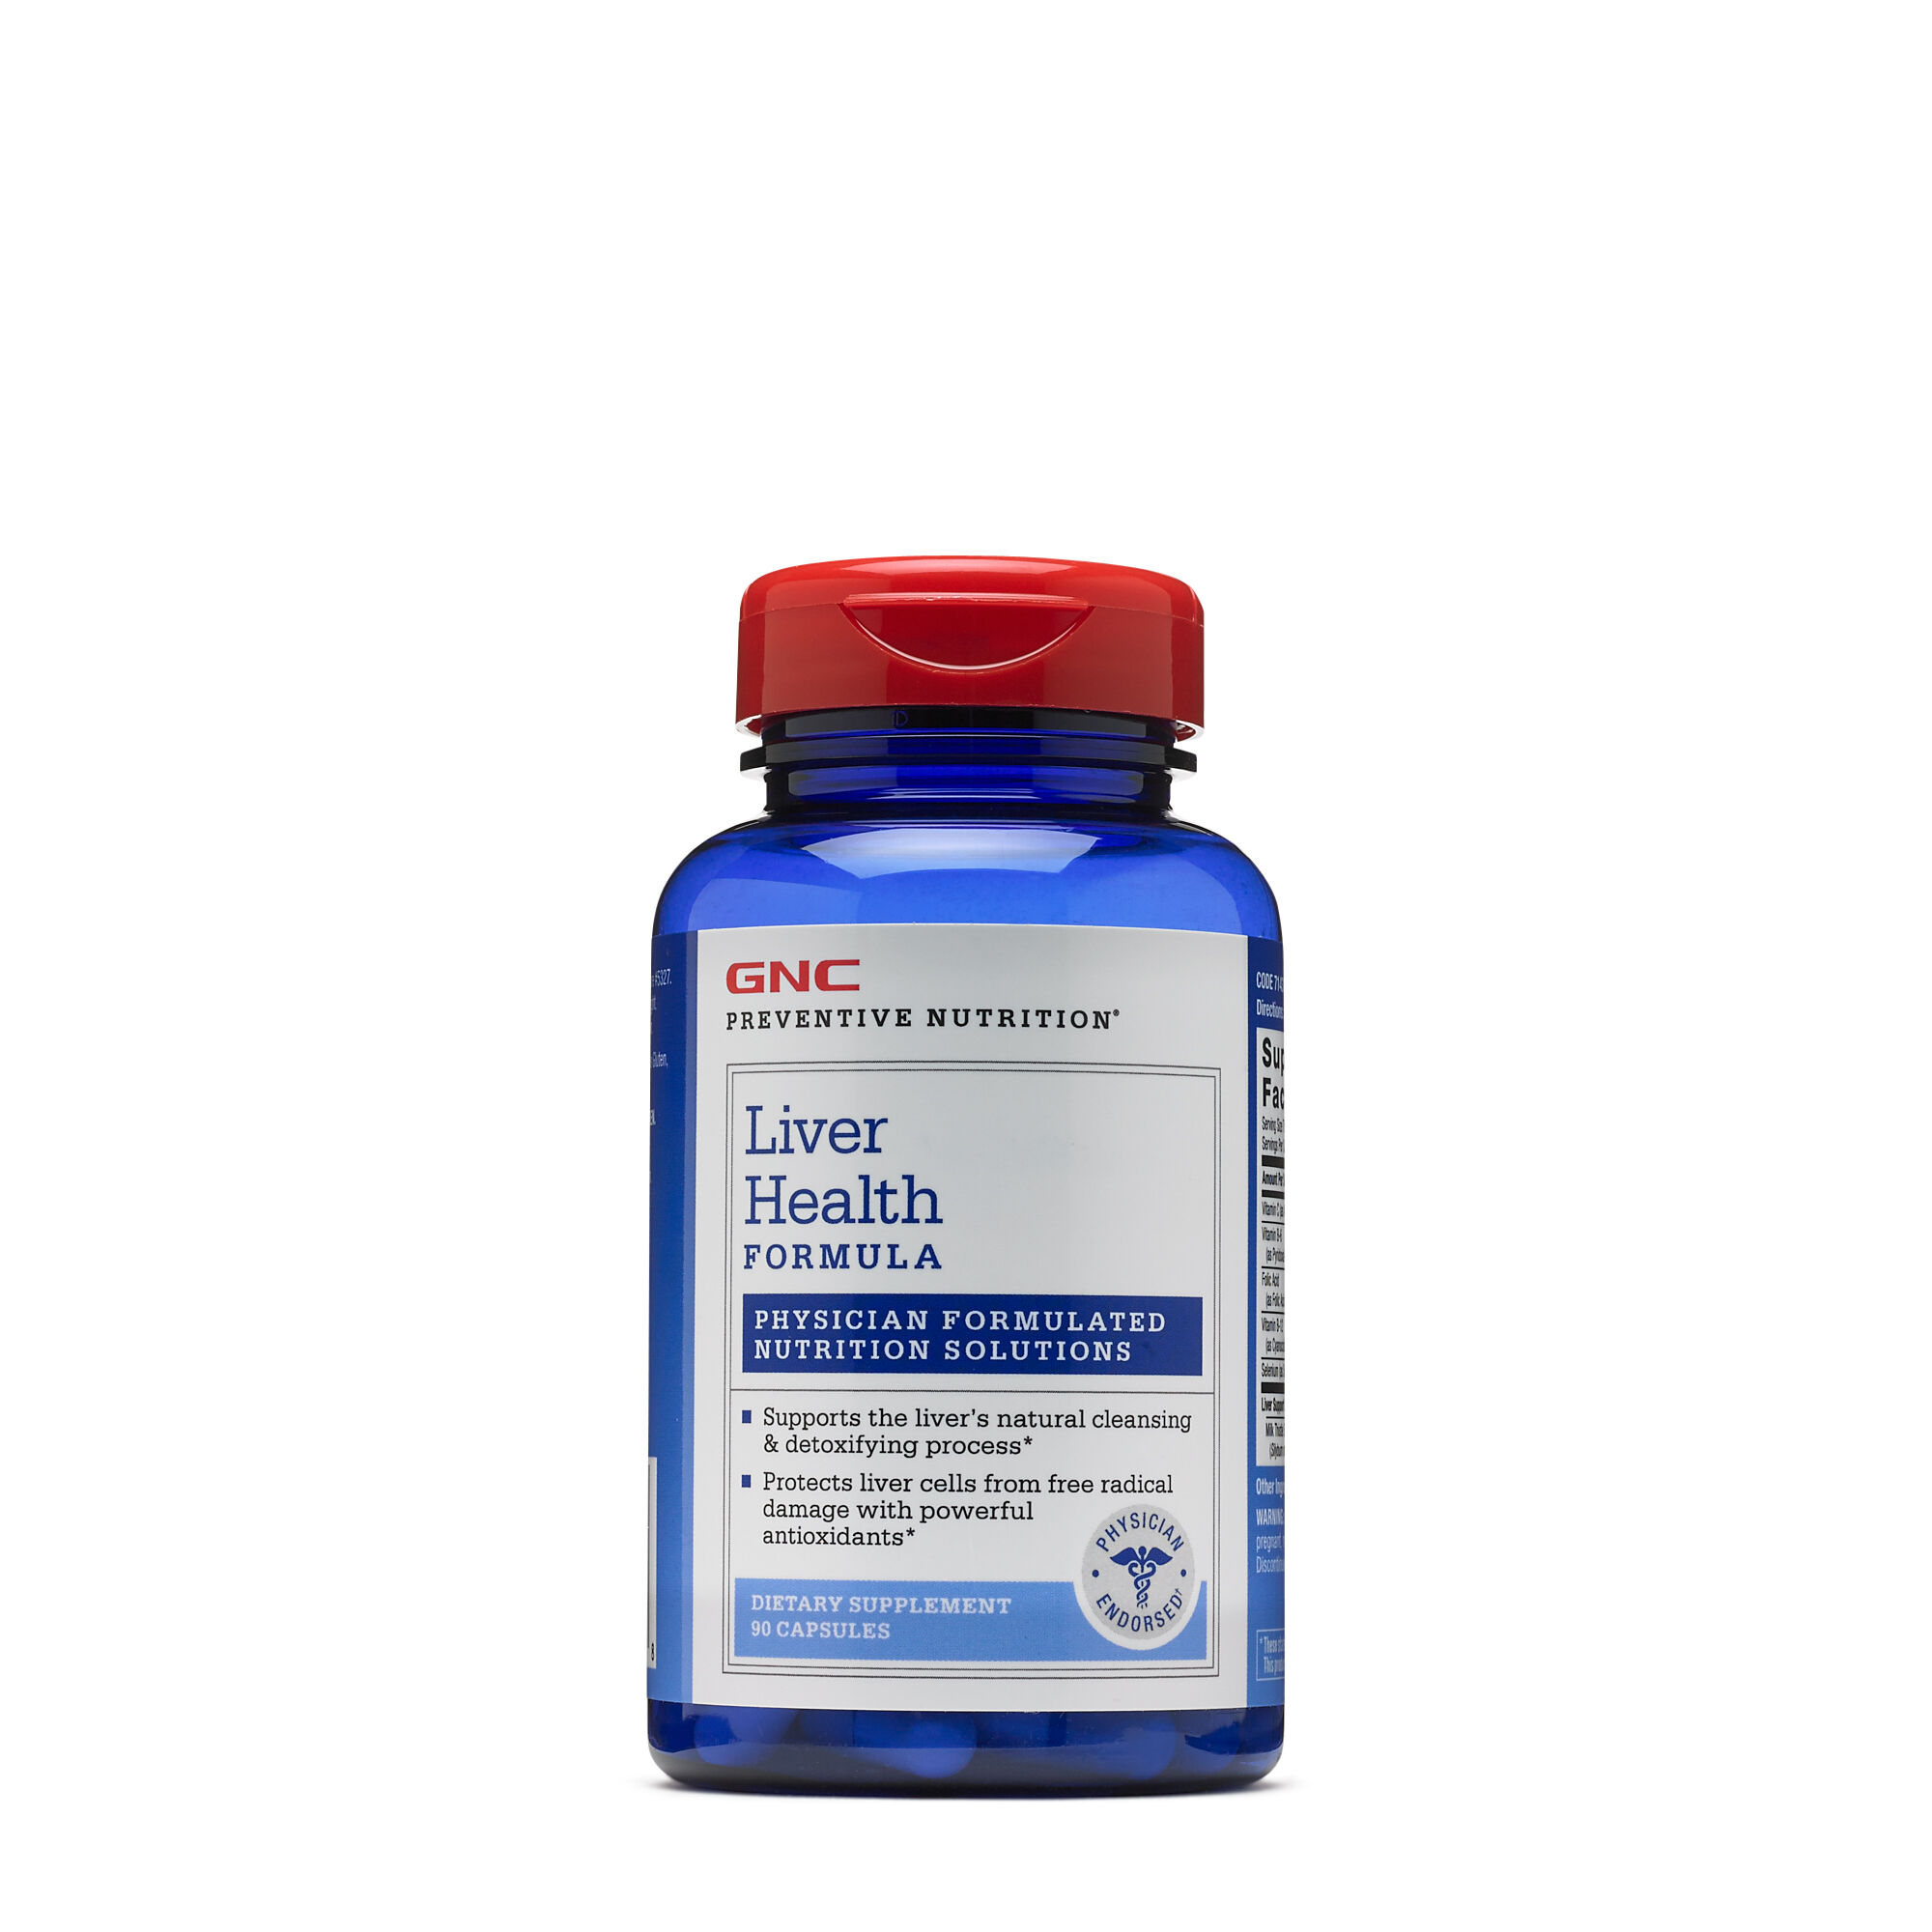 Liver Health Formula - 90 Capsules - GNC Preventive Nutrition� - Liver Support